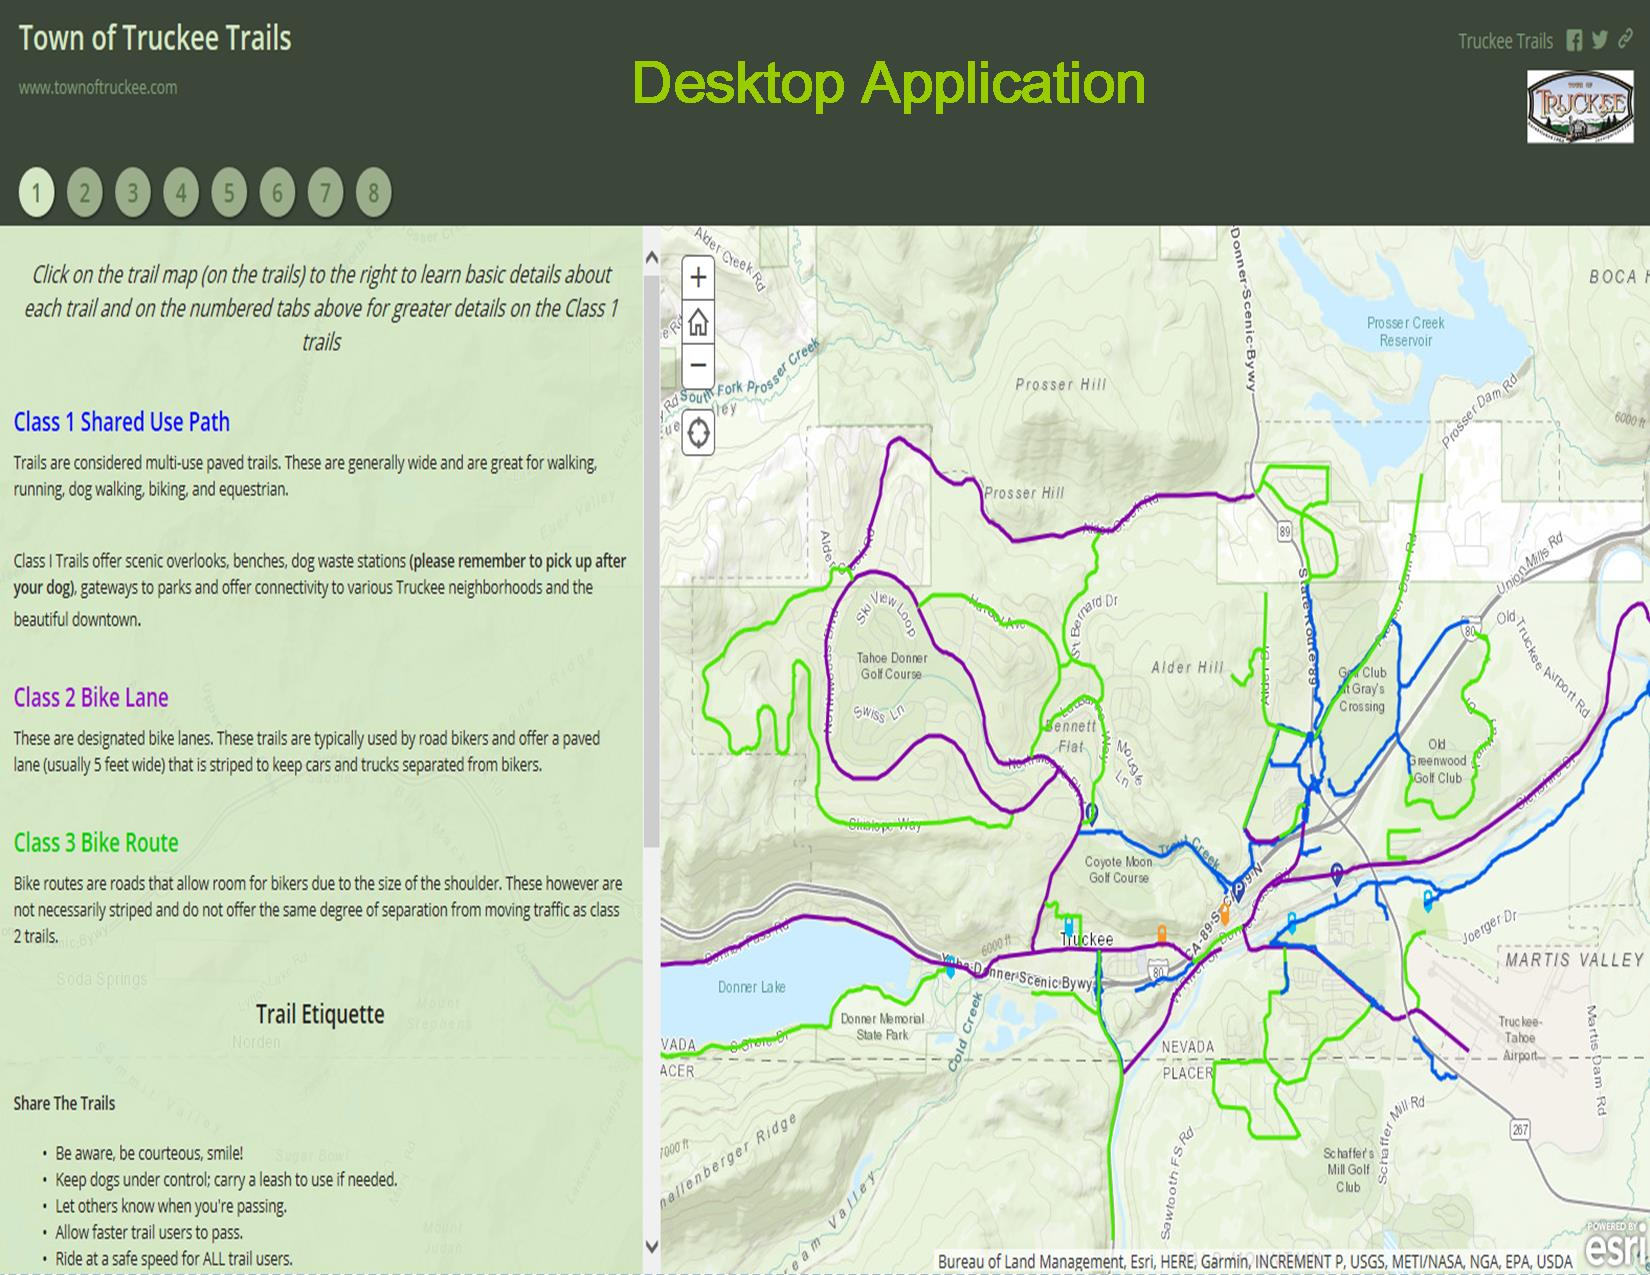 Trail Map - Desktop